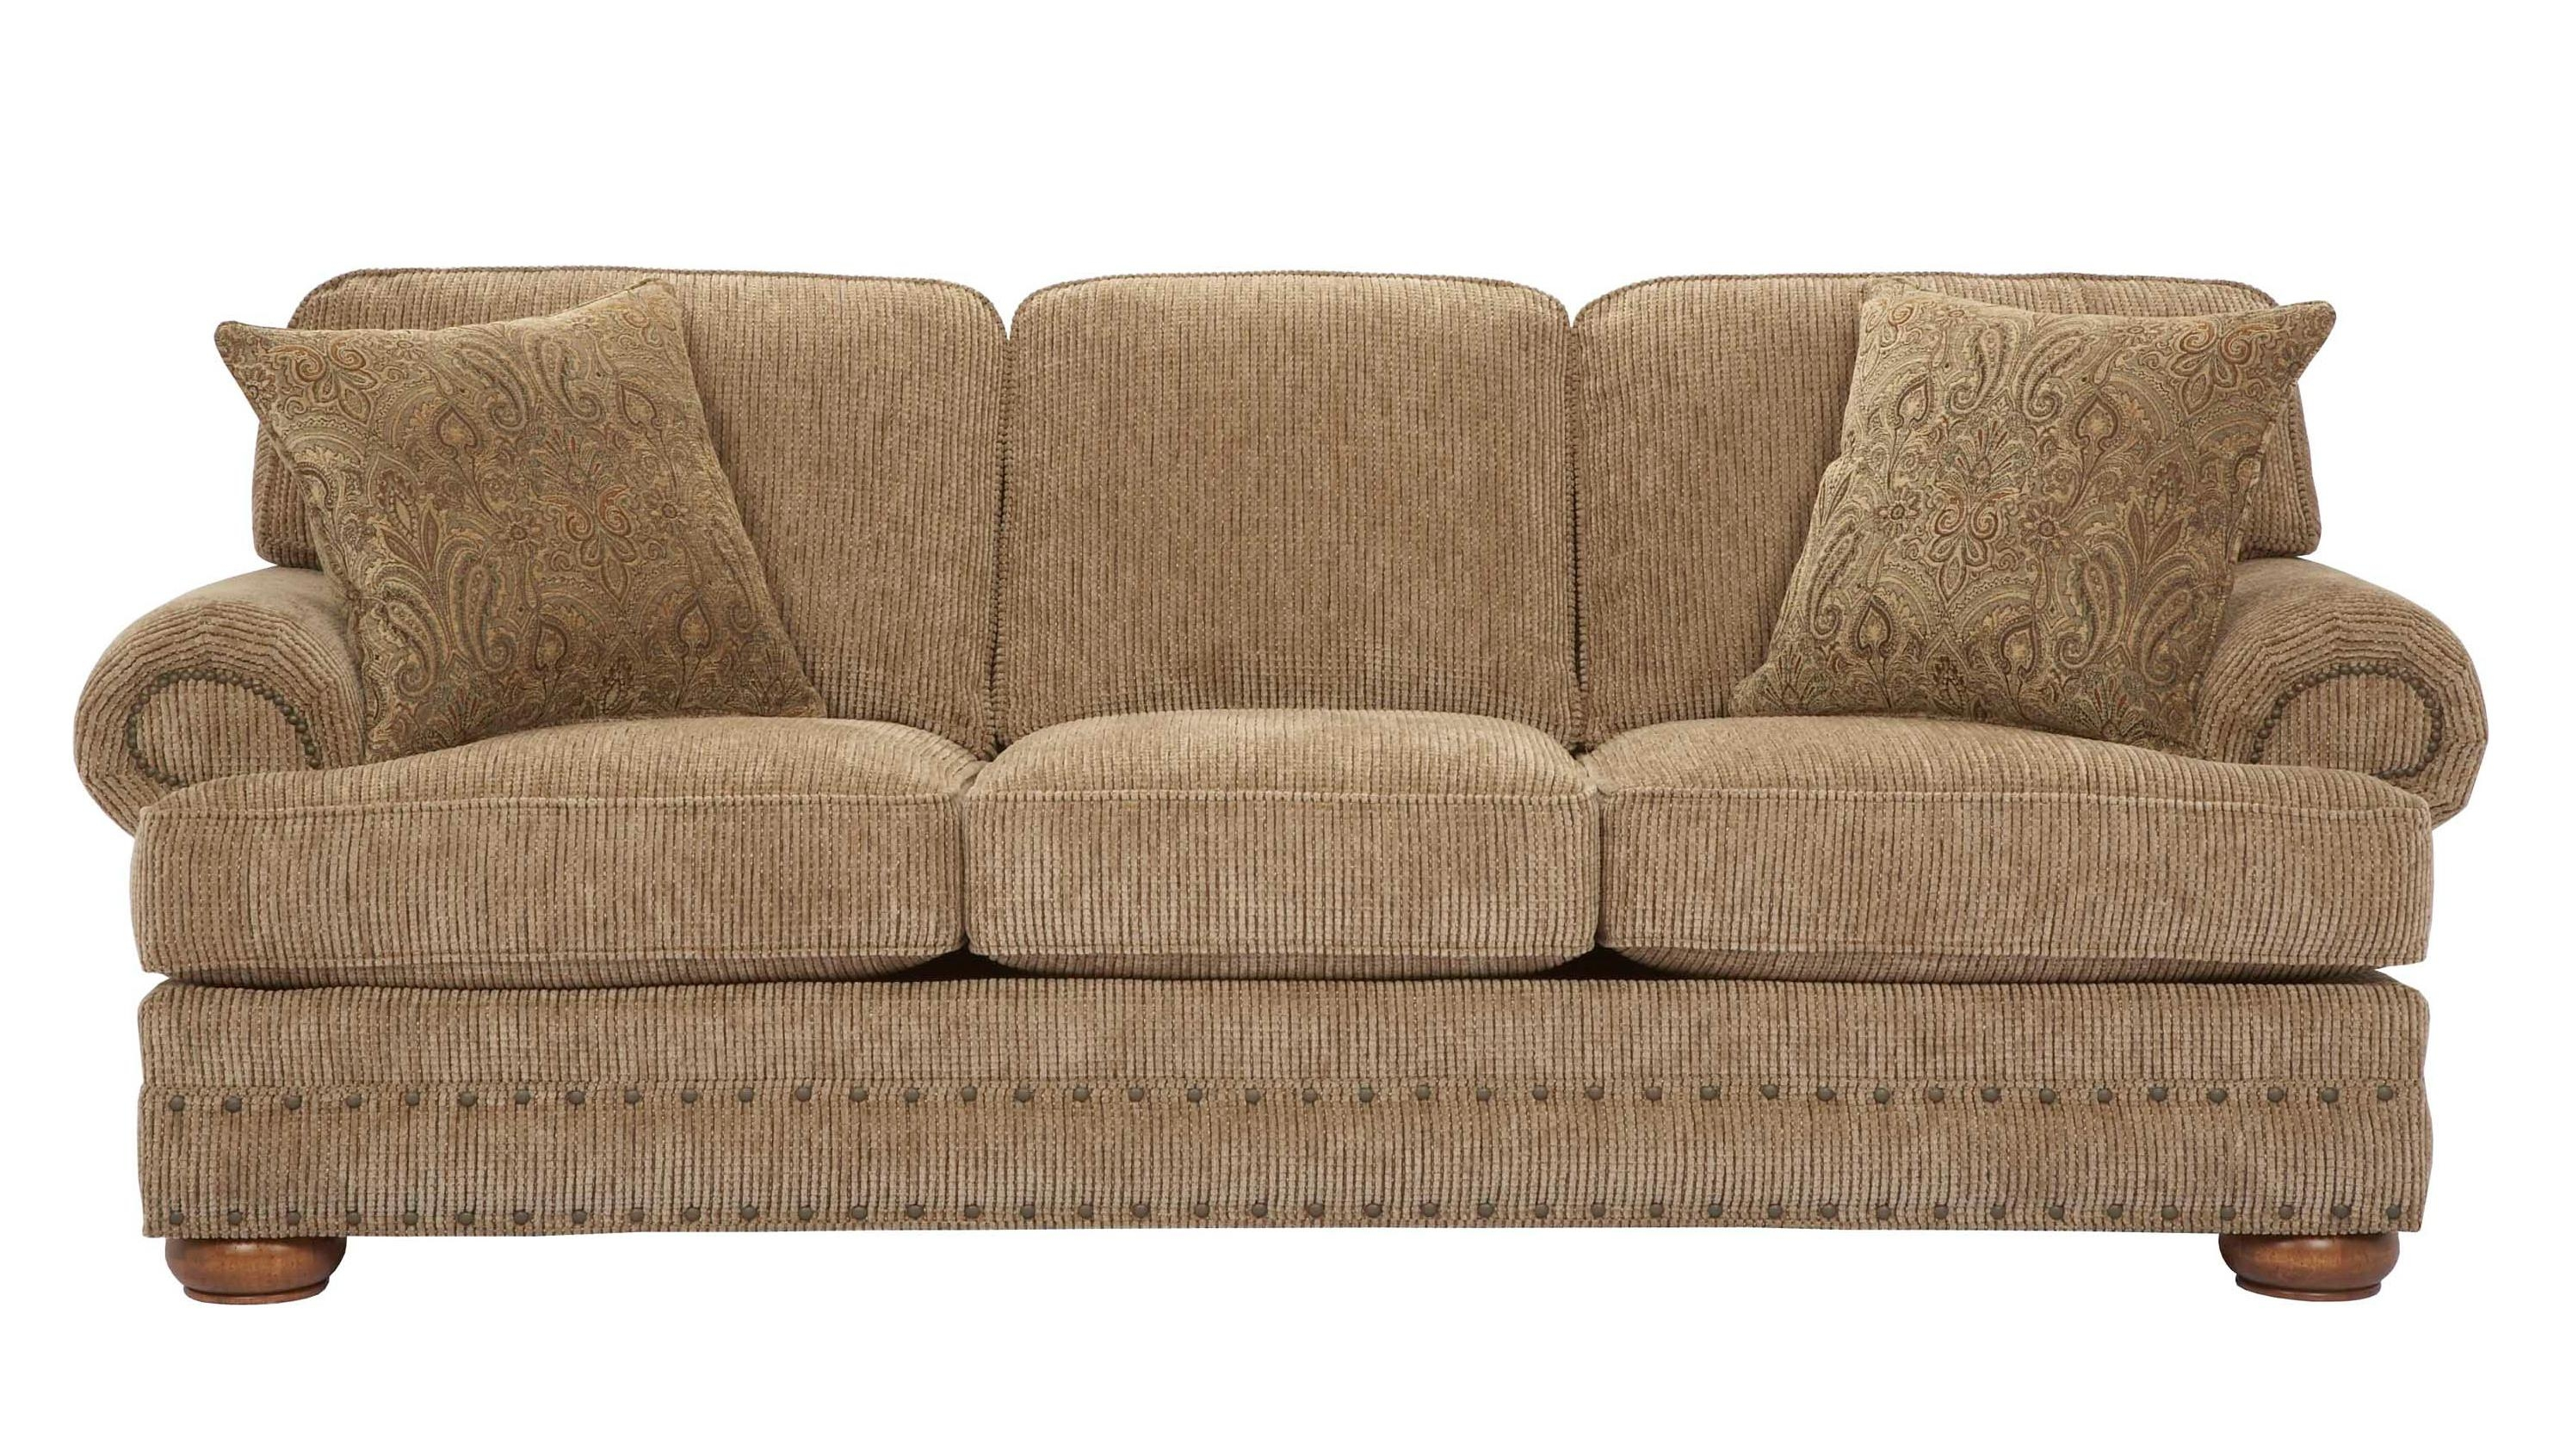 Broyhill Sofa 4178 3 Treatment Recliners Covers Fabric Samples Pertaining To Broyhill Mckinney Sofas (Image 10 of 20)